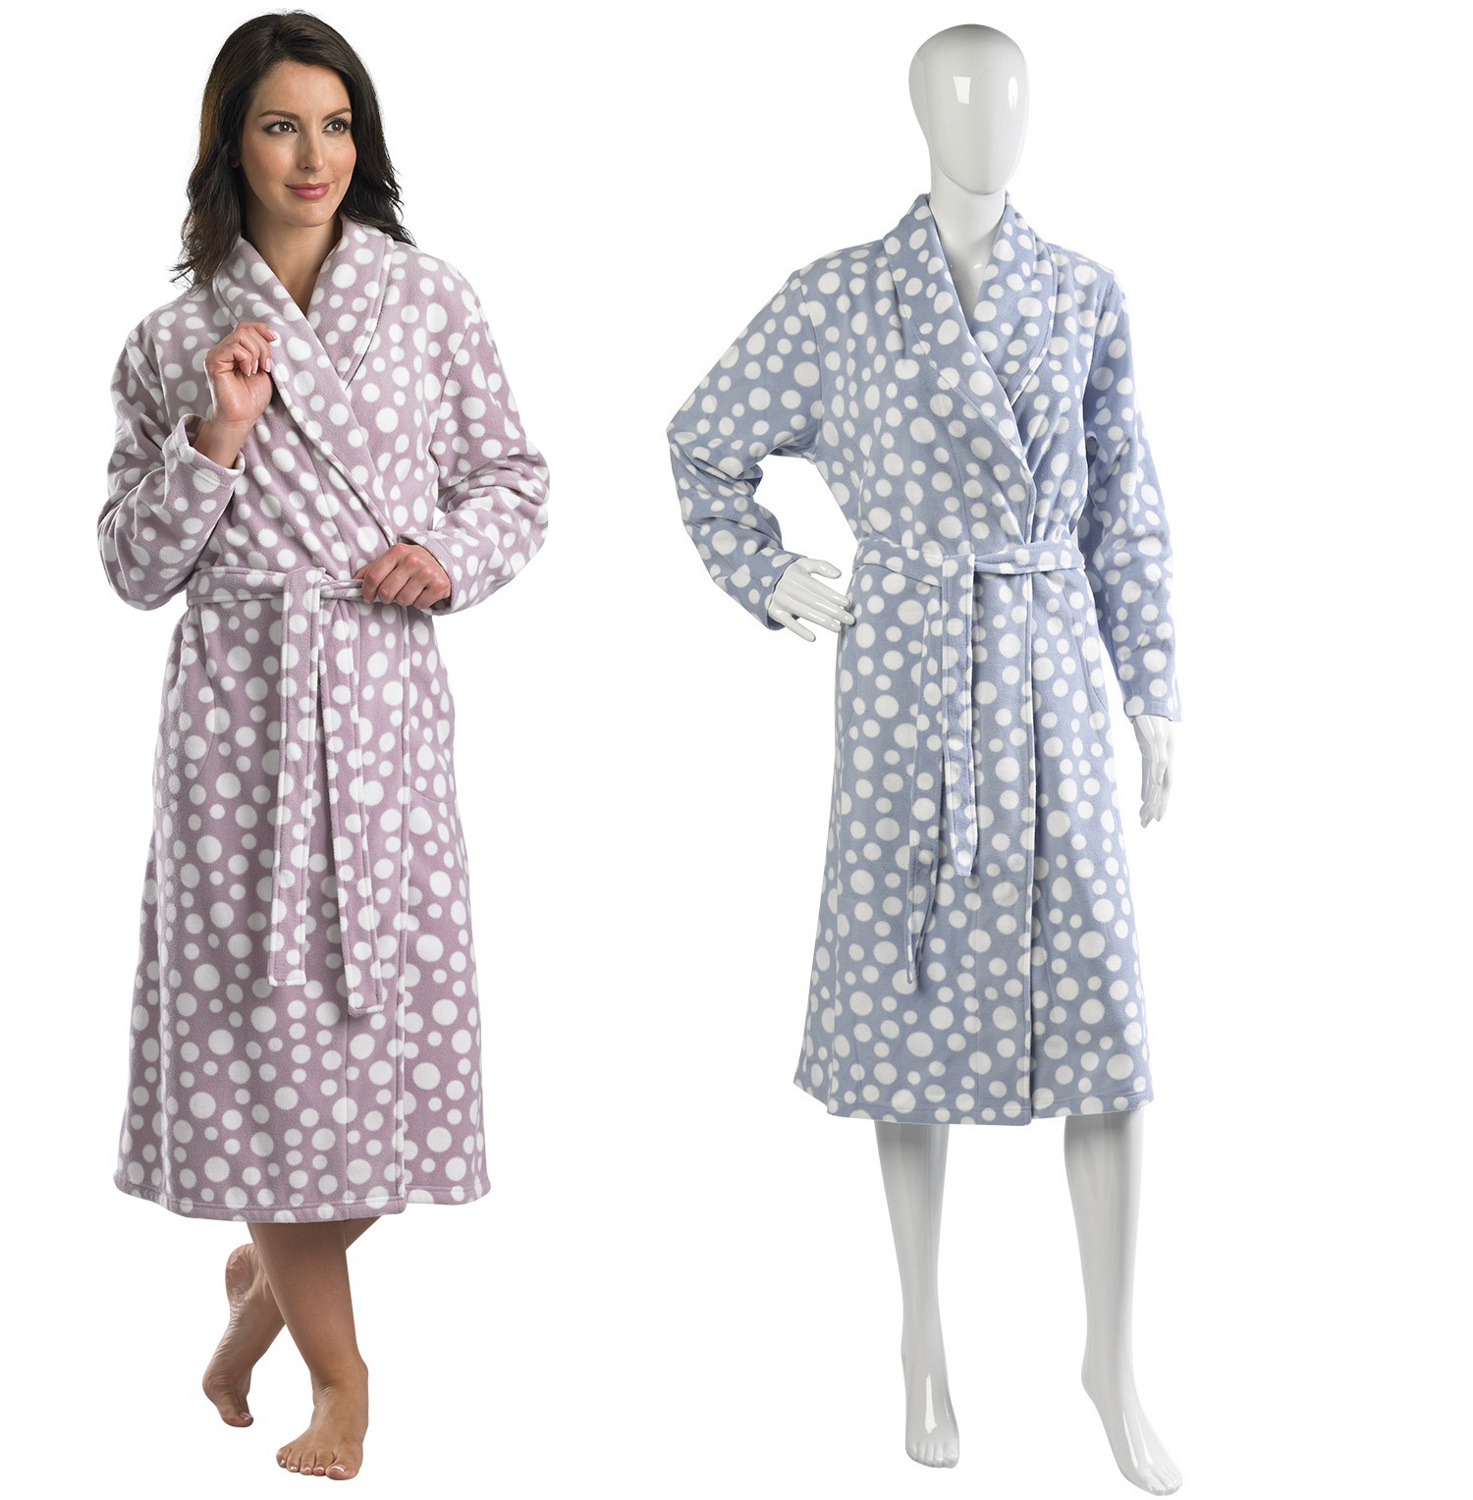 Slenderella Polar Fleece Dressing Gown Ladies Wrap Around Polka Dot ...